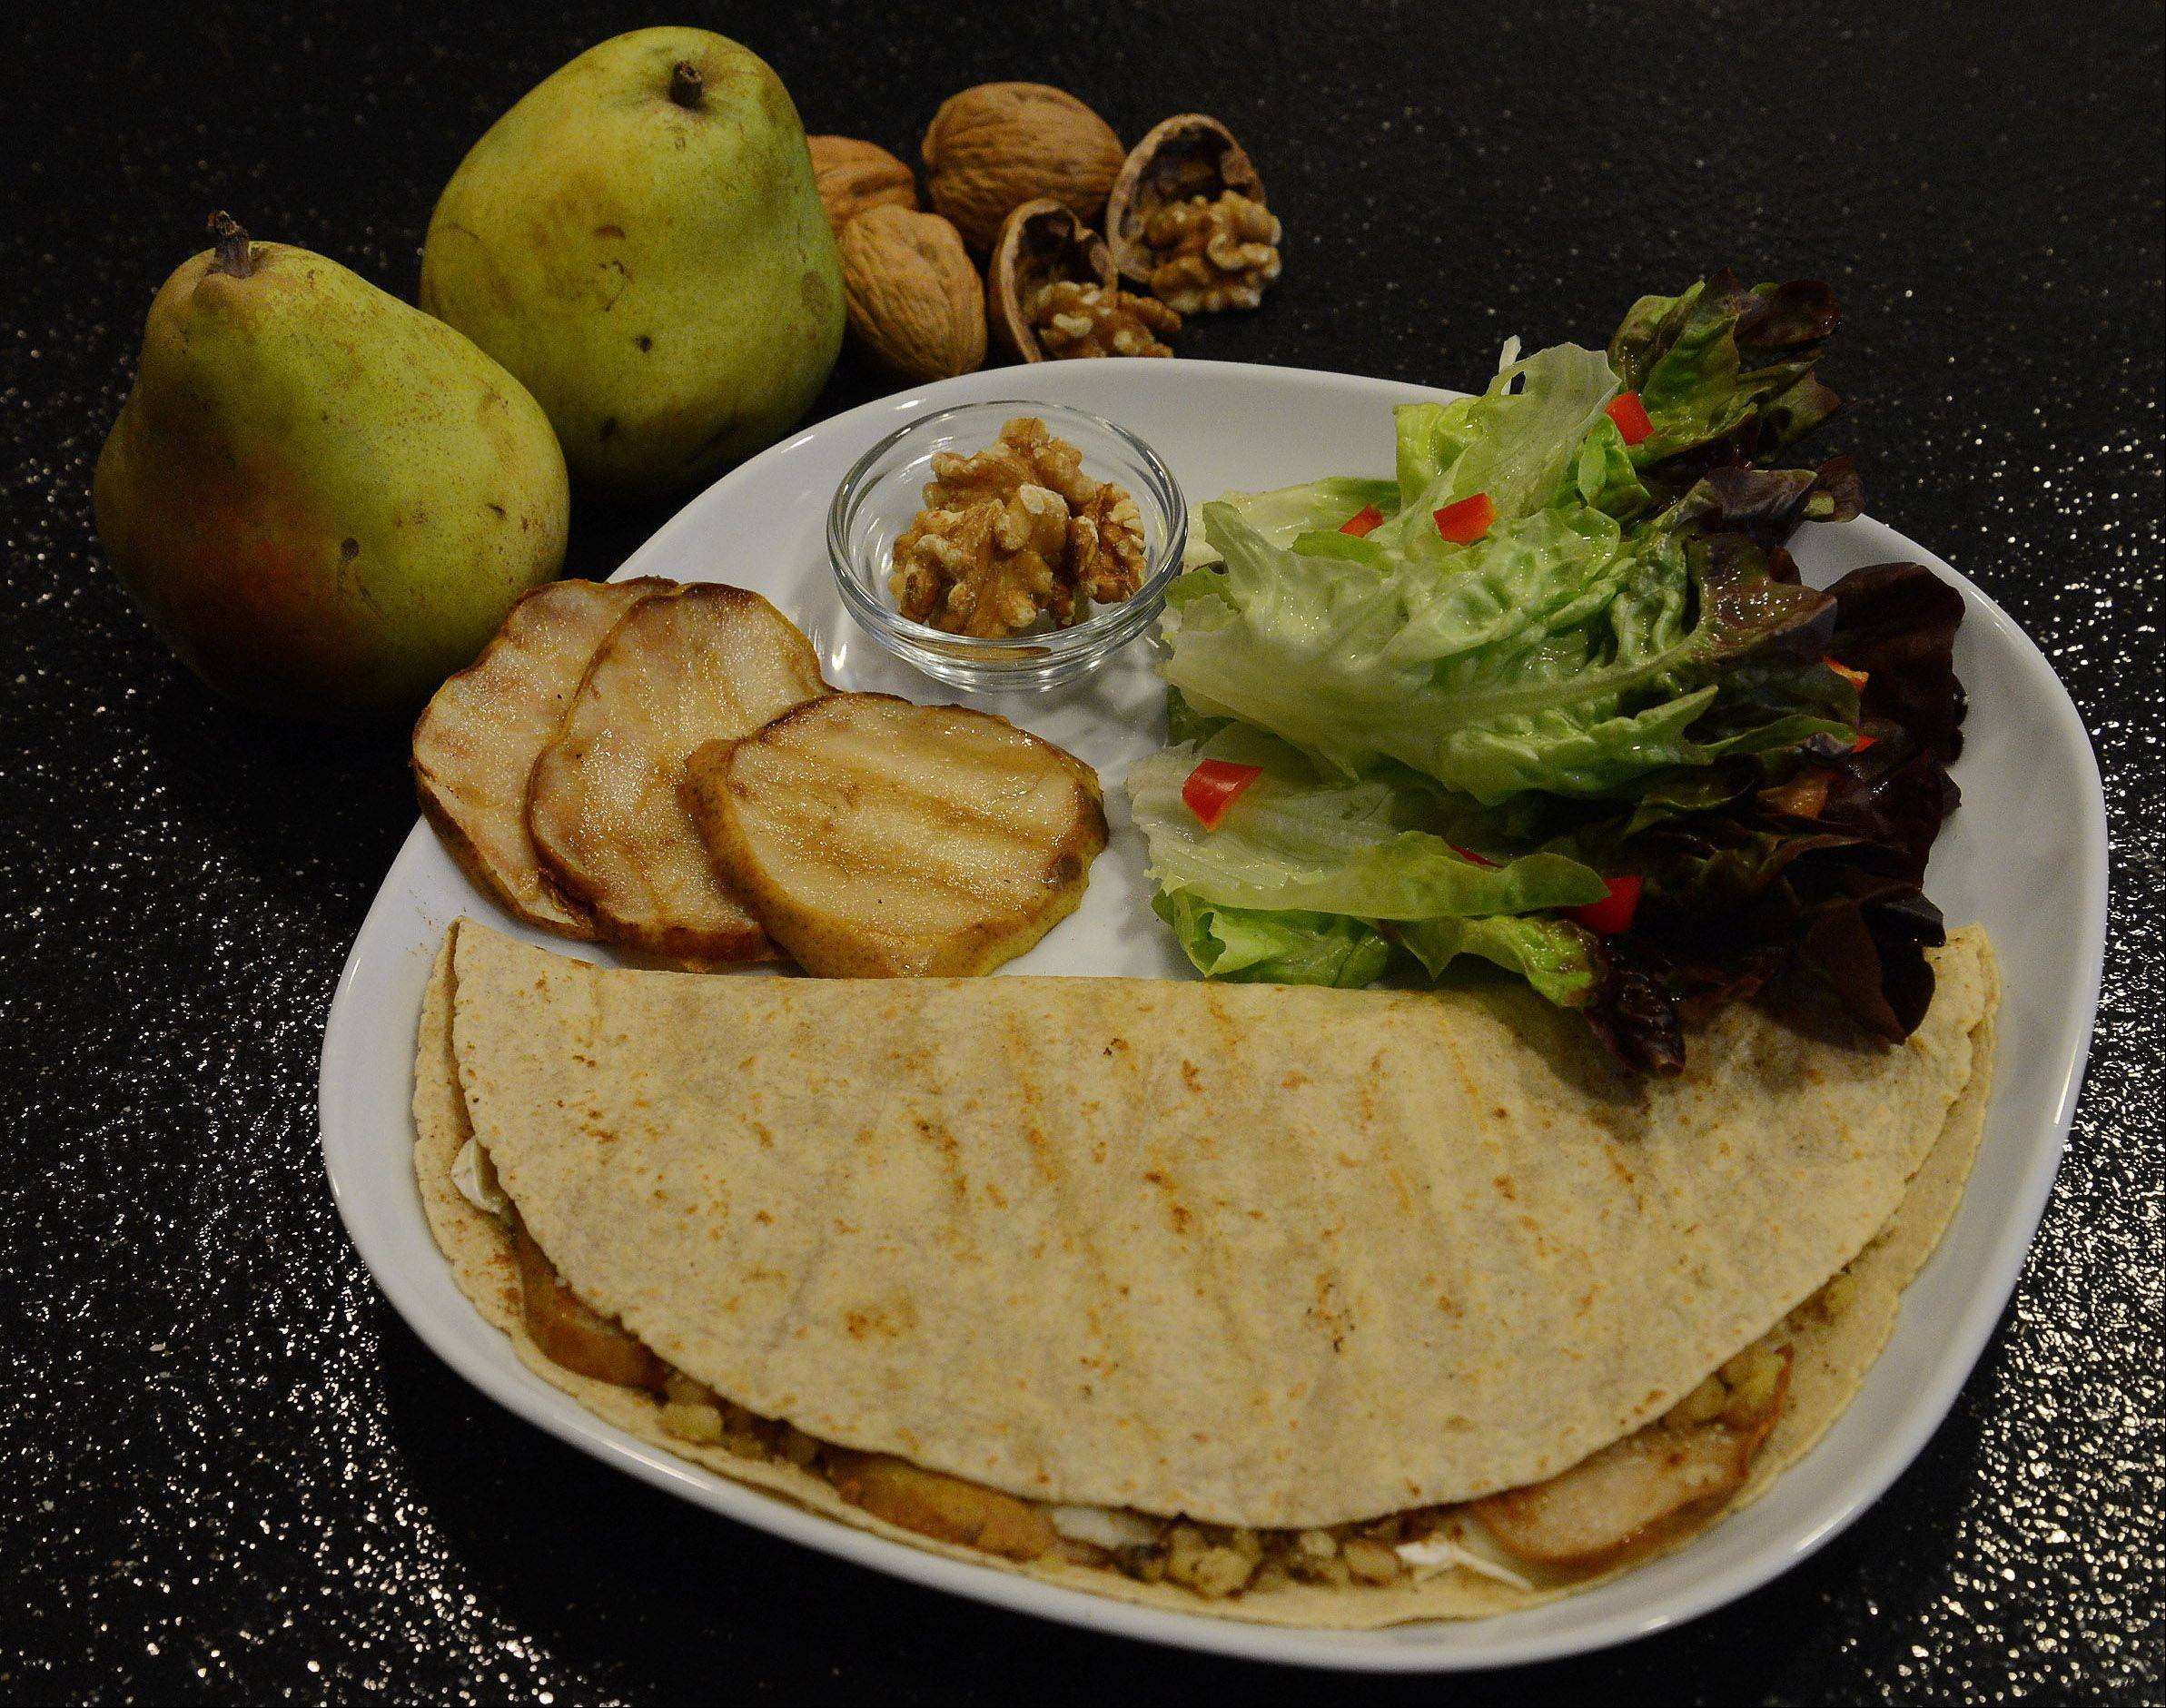 Grilled Pear, Brie and Walnut Quesadilla